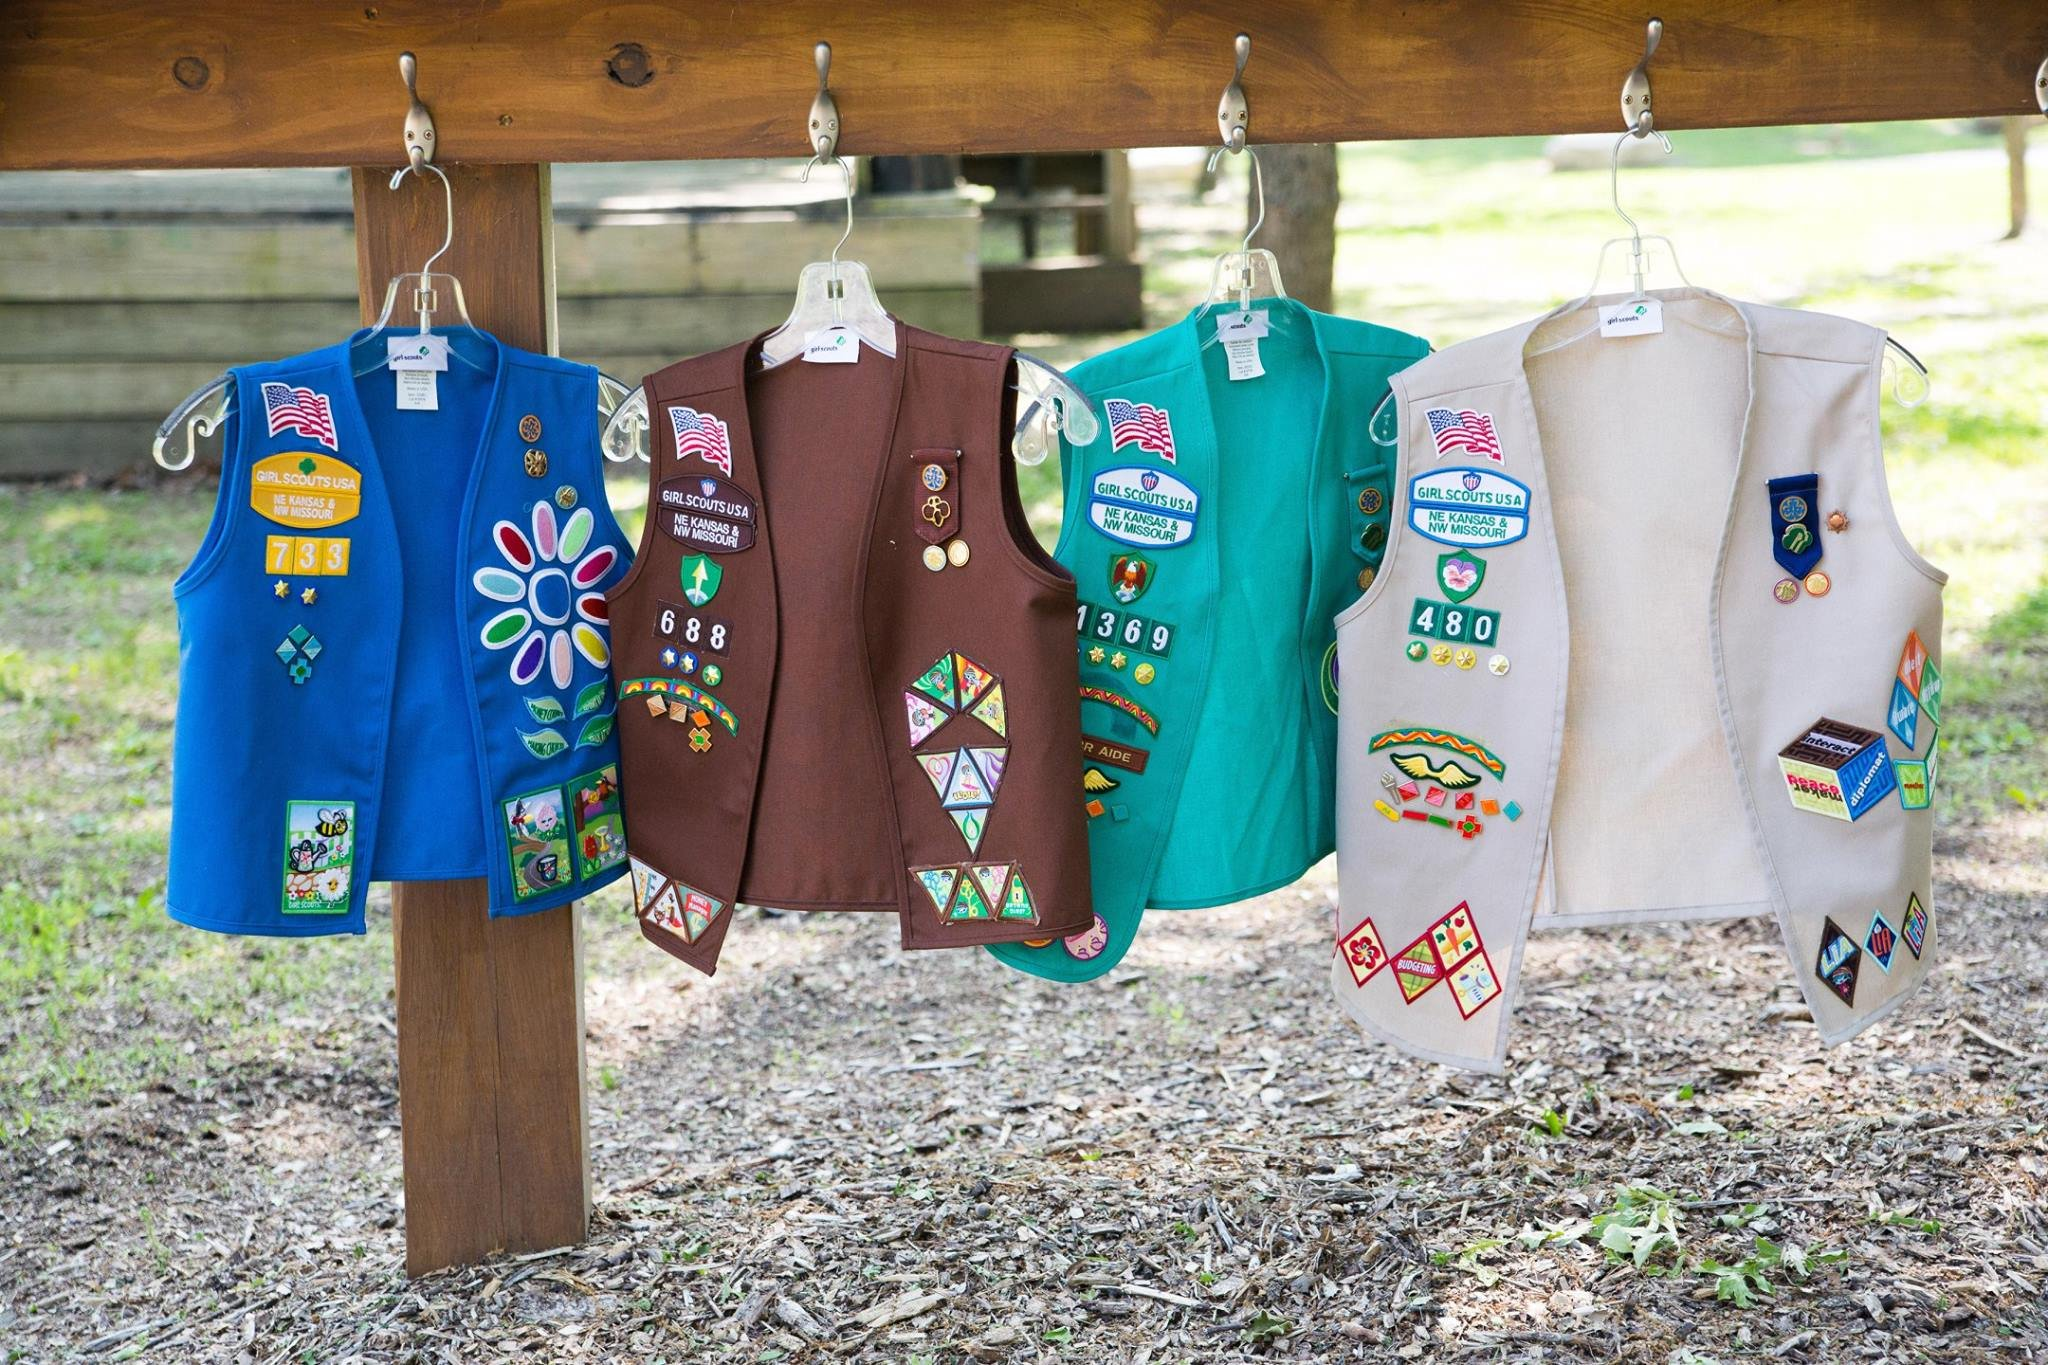 GirlScoutsof northeast Kansas and northwest Missouri have announced plans to close one of its camps. (Girl Scouts of NE Kansas & NW Missouri/Facebook)